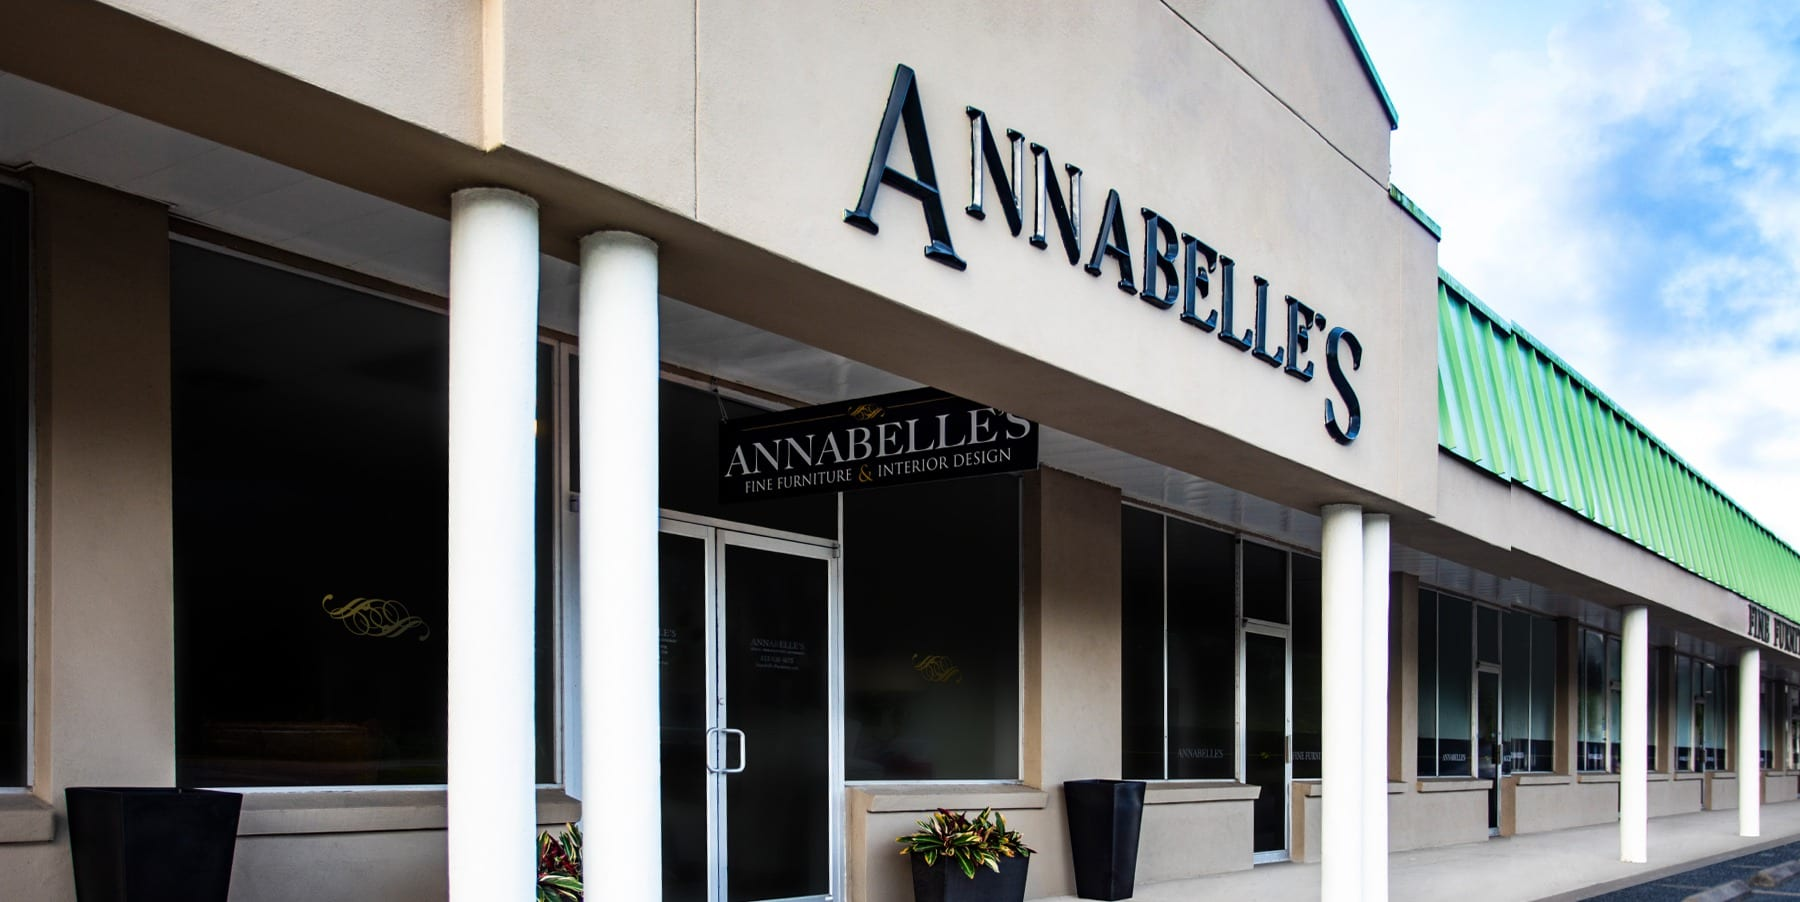 Annabelle's Fine Furniture